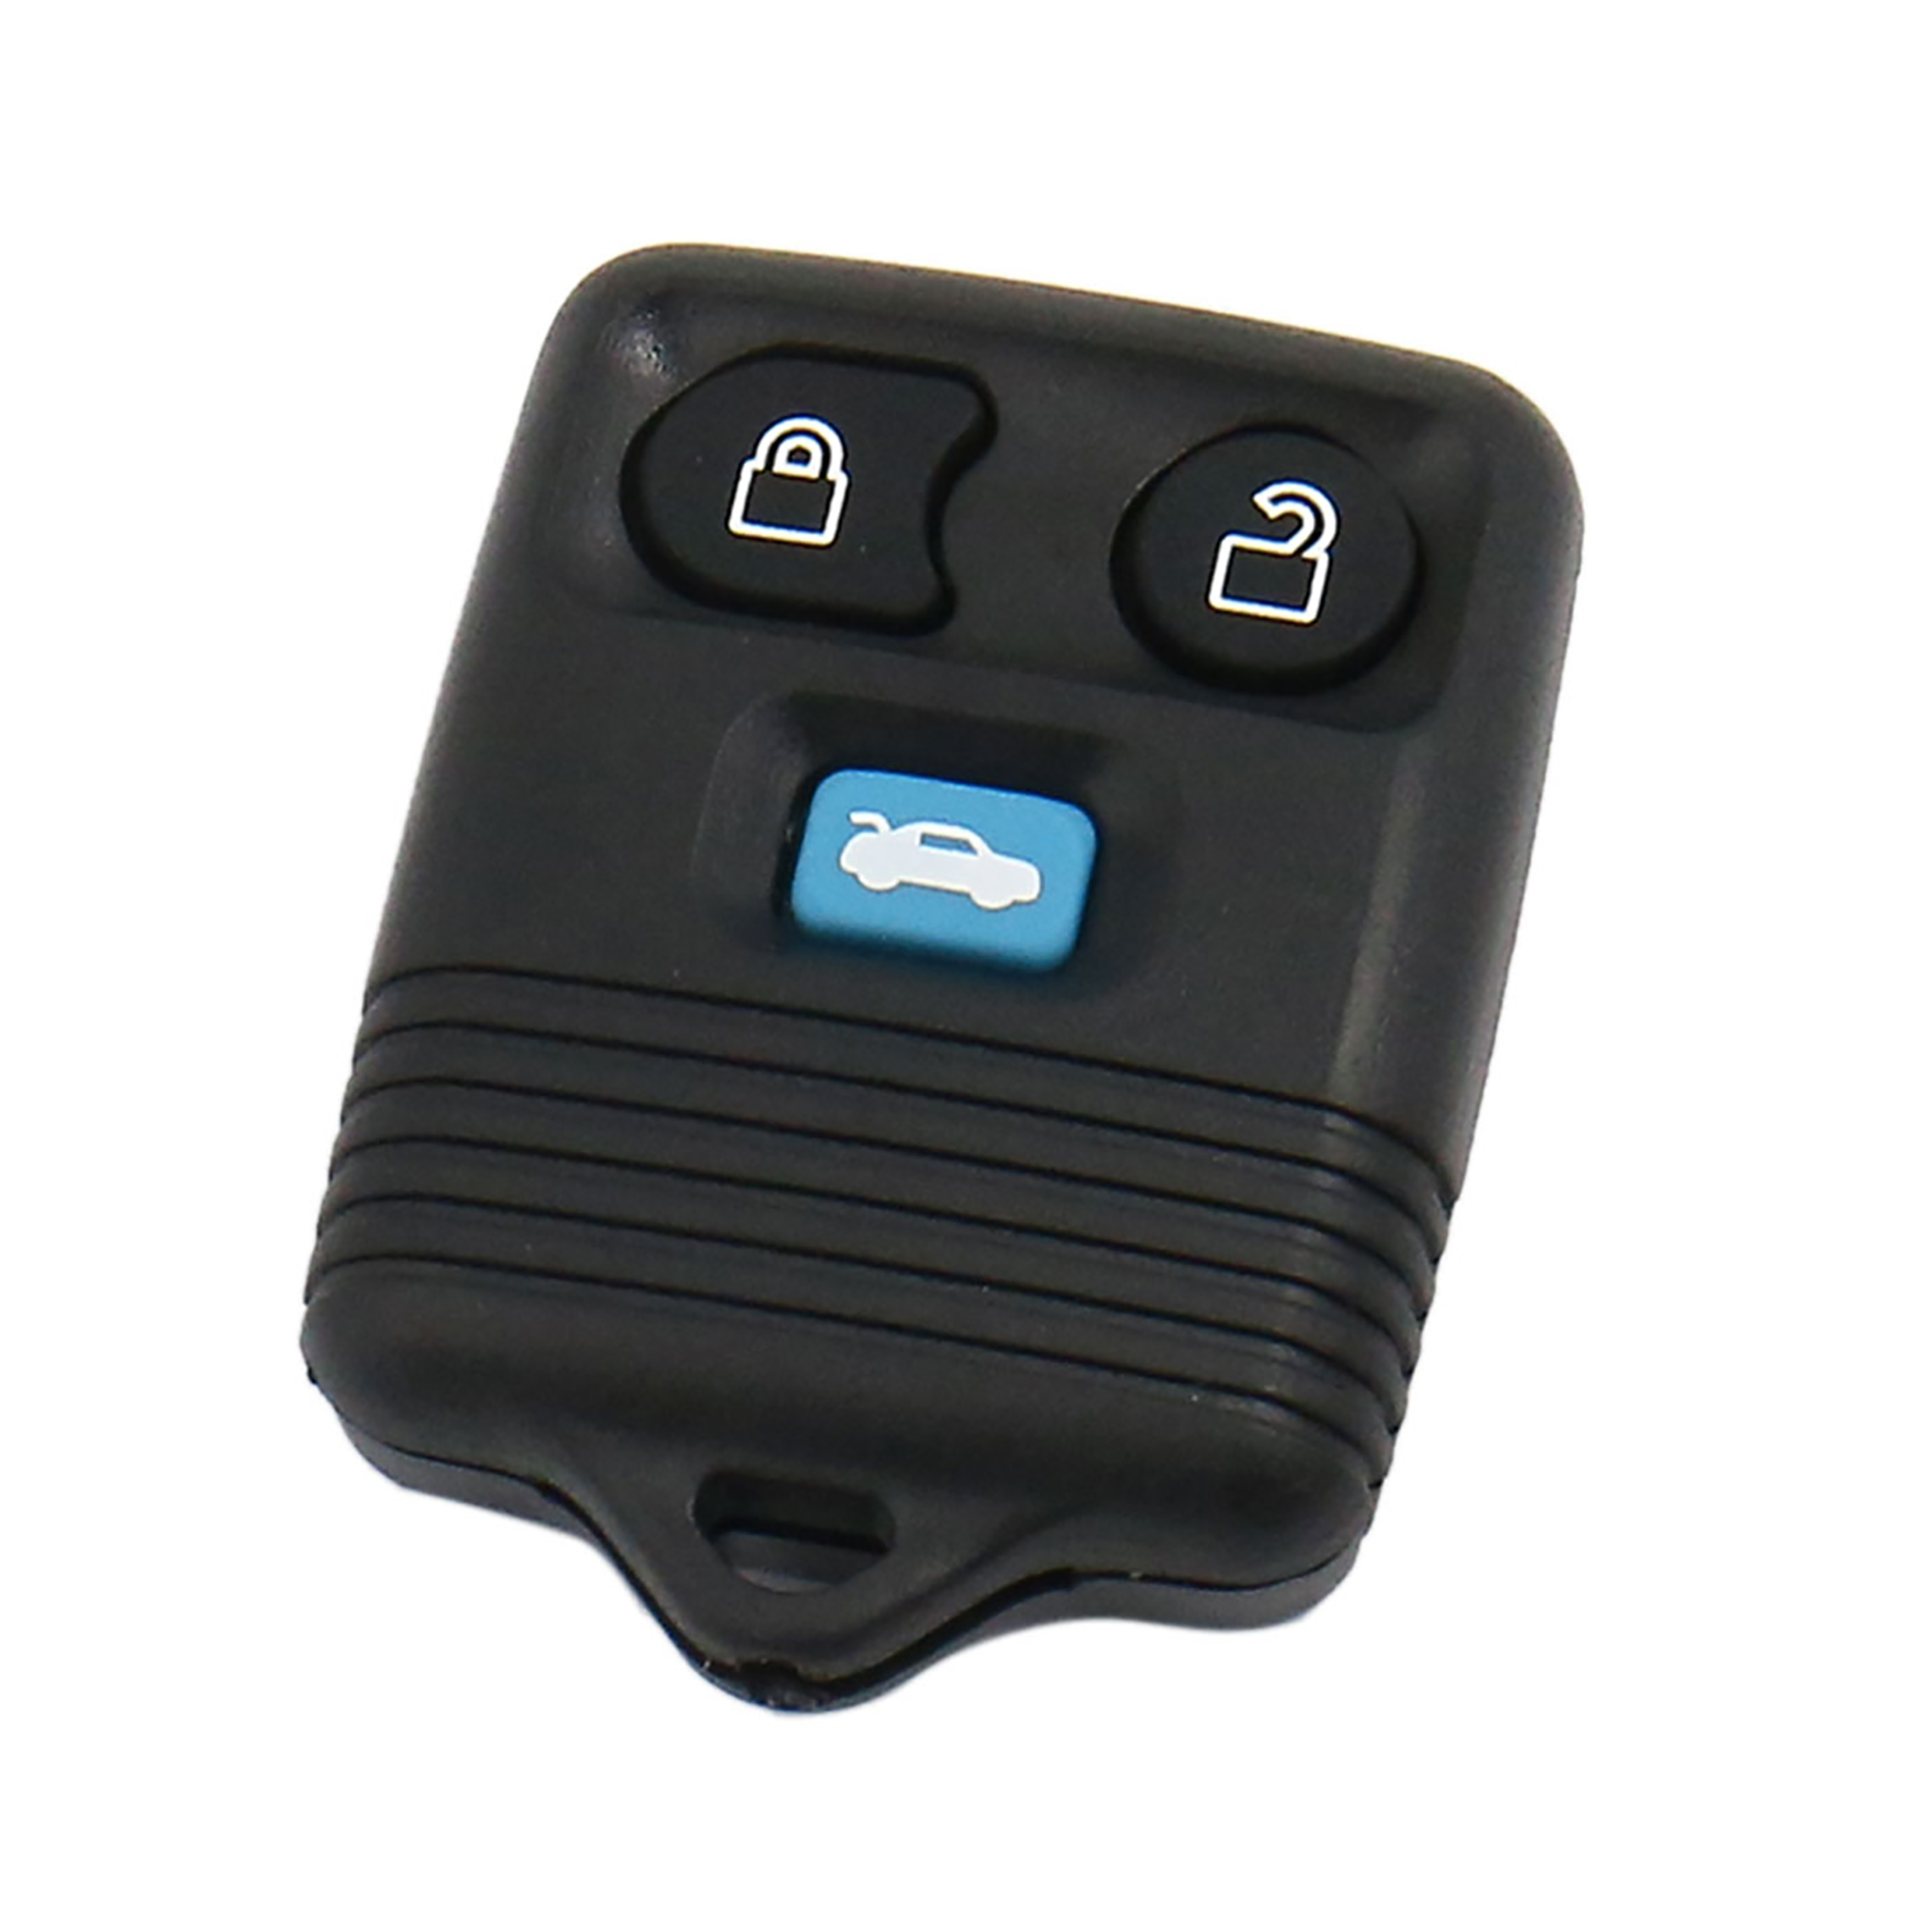 Replacement Car Keyless Entry Remote Fob for Ford Transit MK6 Connect 2000-2006